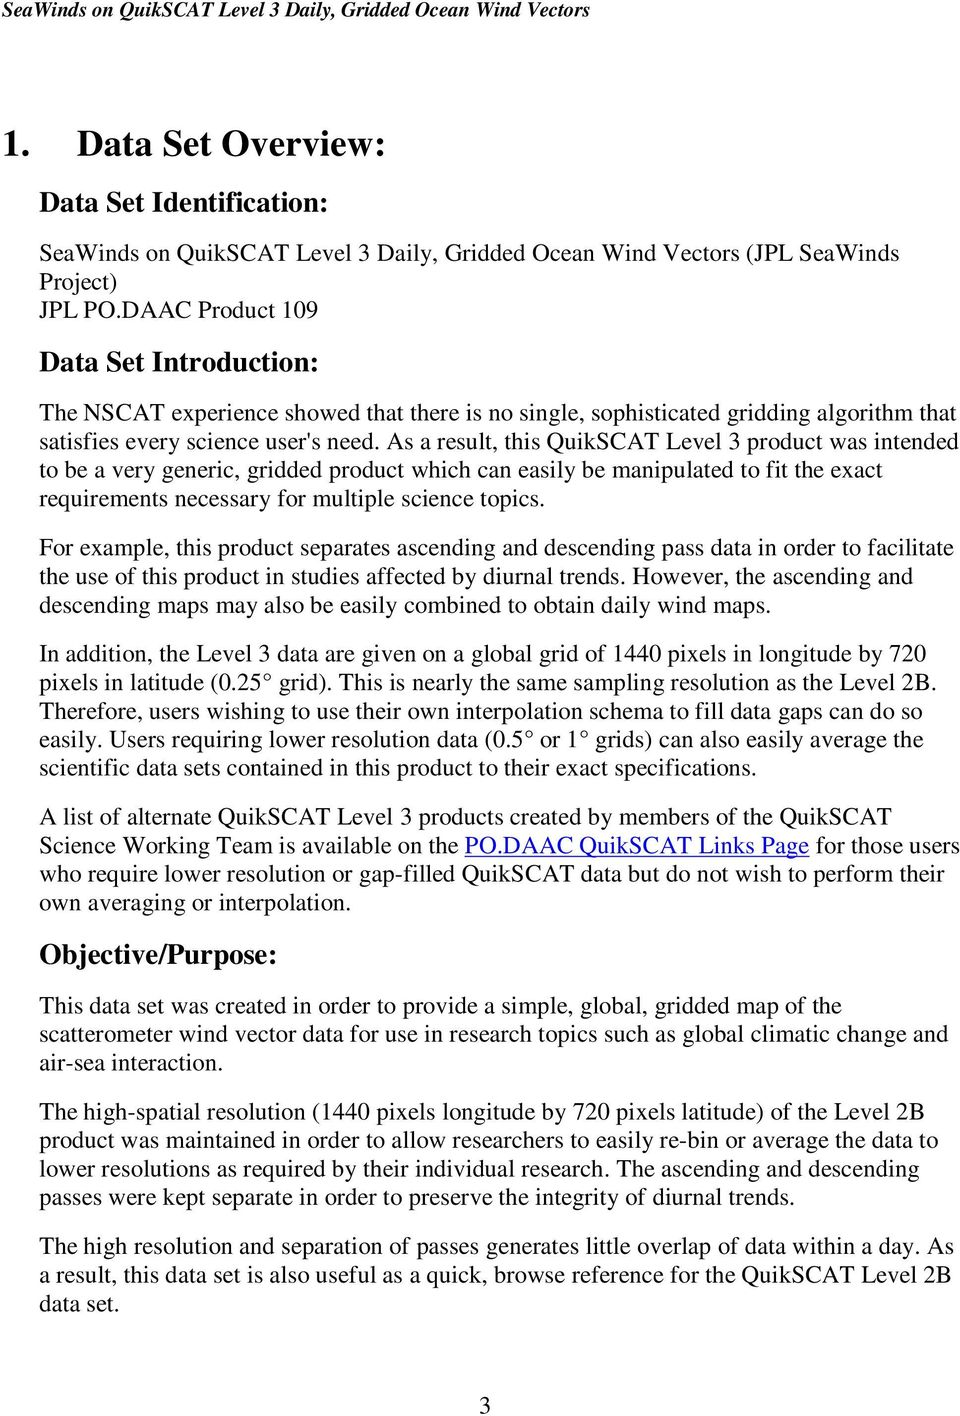 As a result, this QuikSCAT Level 3 product was intended to be a very generic, gridded product which can easily be anipulated to fit the exact requireents necessary for ultiple science topics.